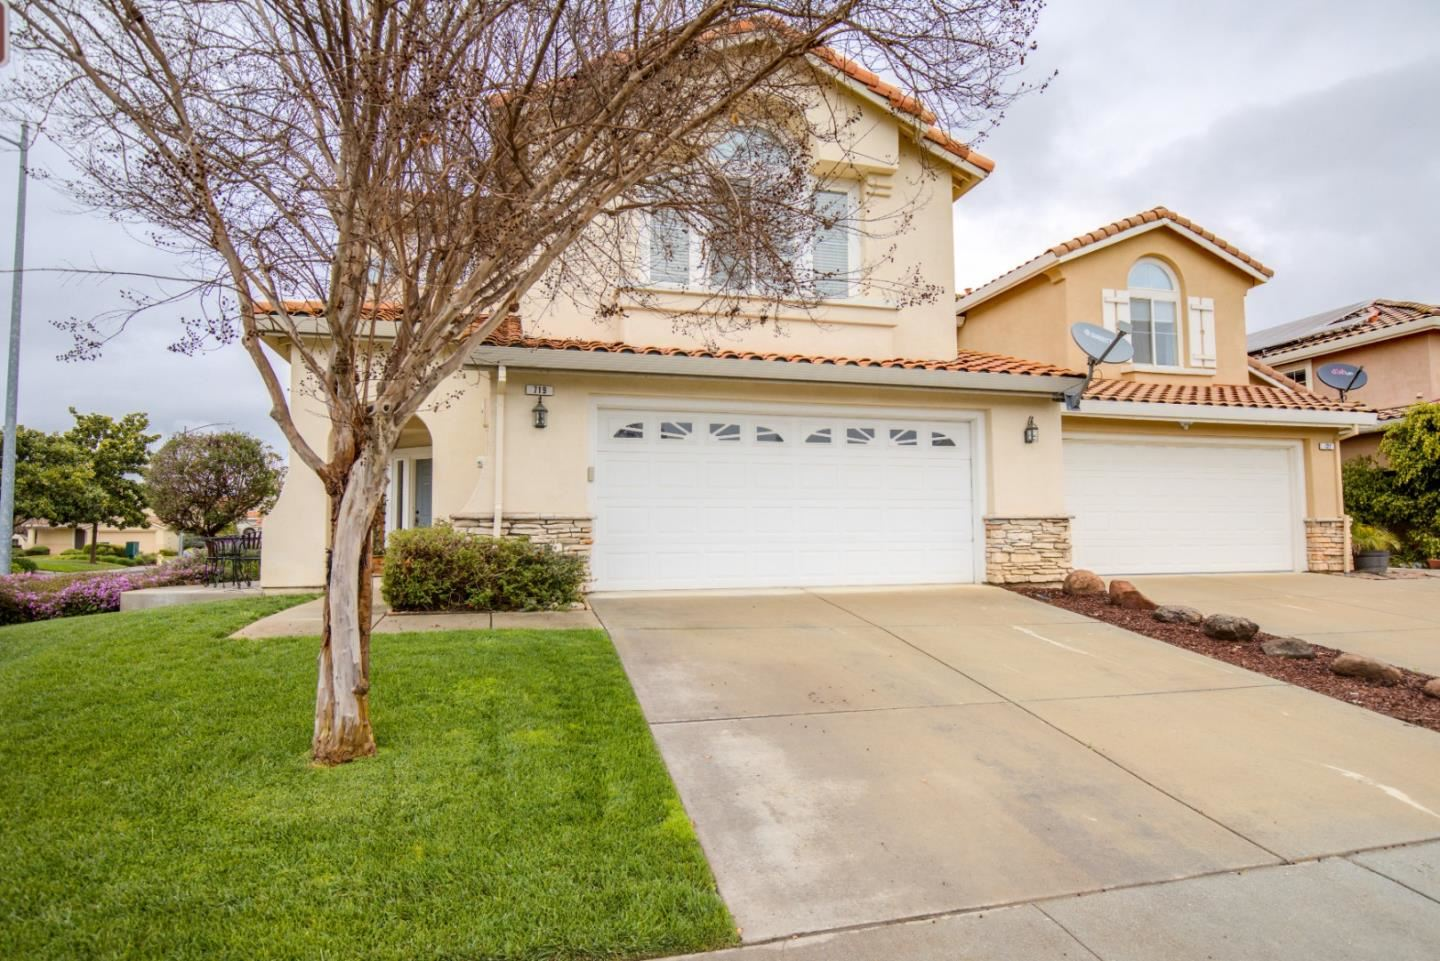 719 Saint Michael PL, Morgan Hill, CA 95037 - #: ML81788673